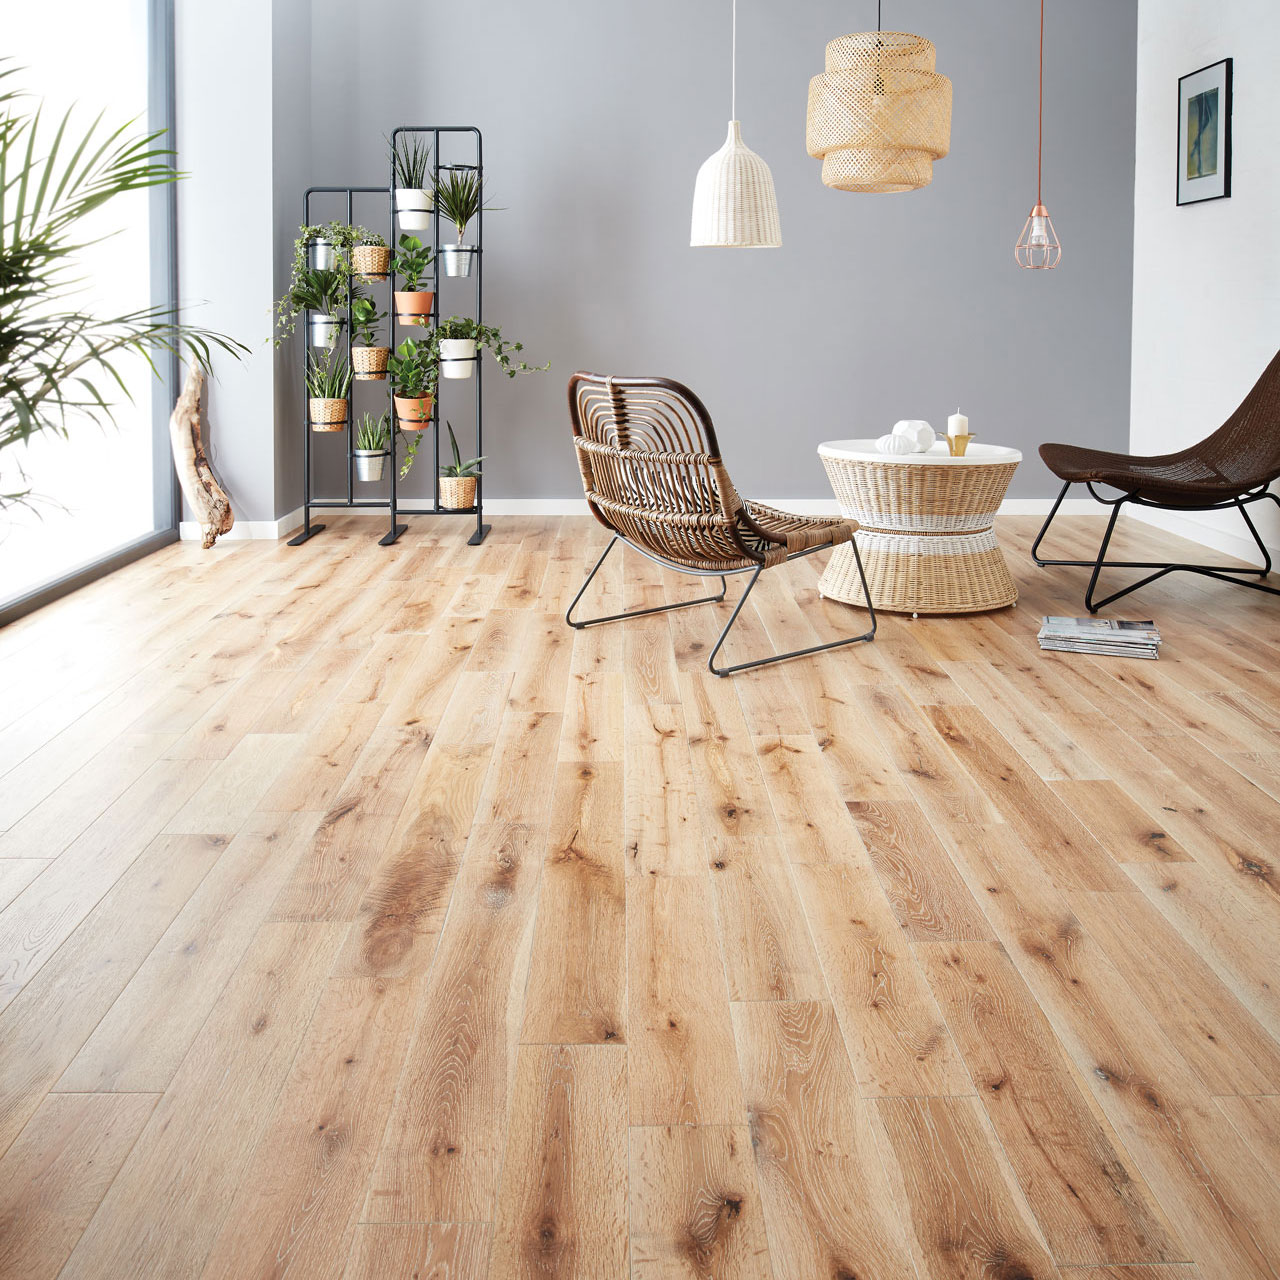 White washed oak wood flooring woodpecker flooring White washed wood flooring